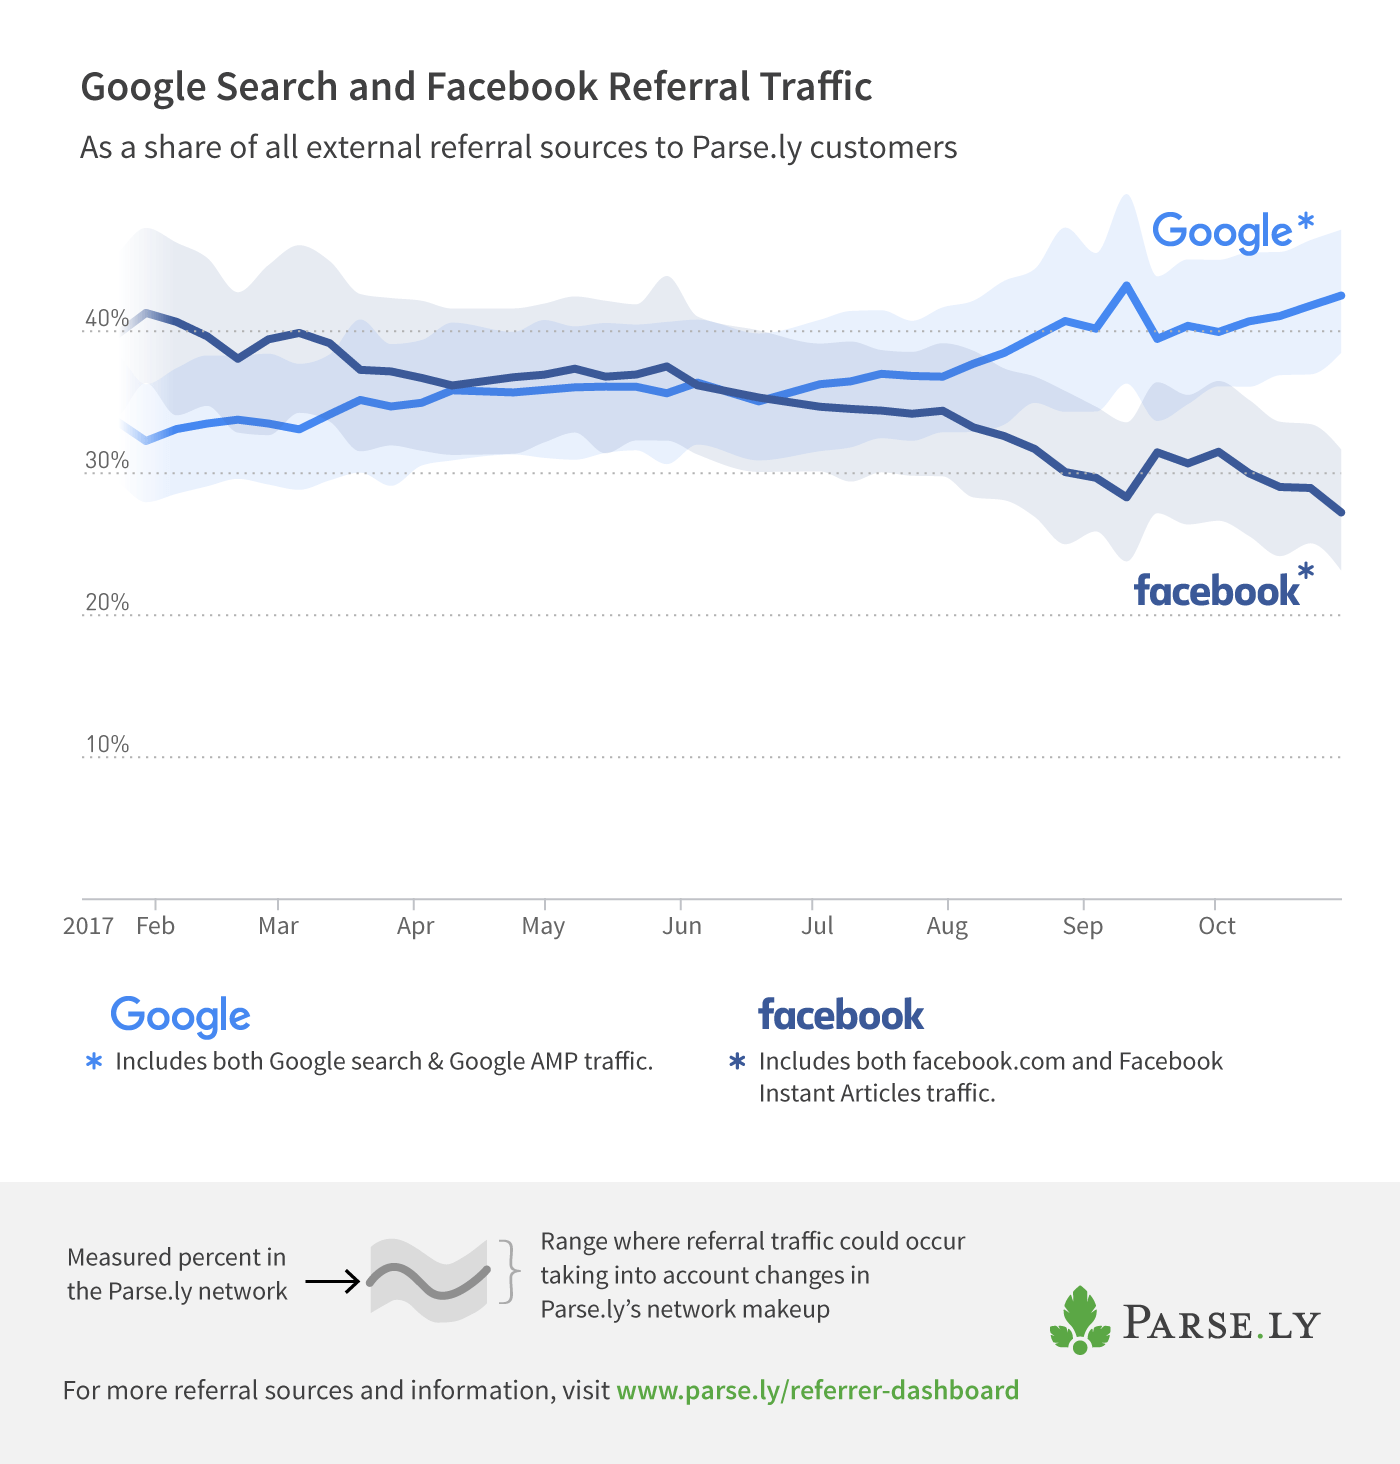 Google Search and Facebook referral traffic to Parse.ly